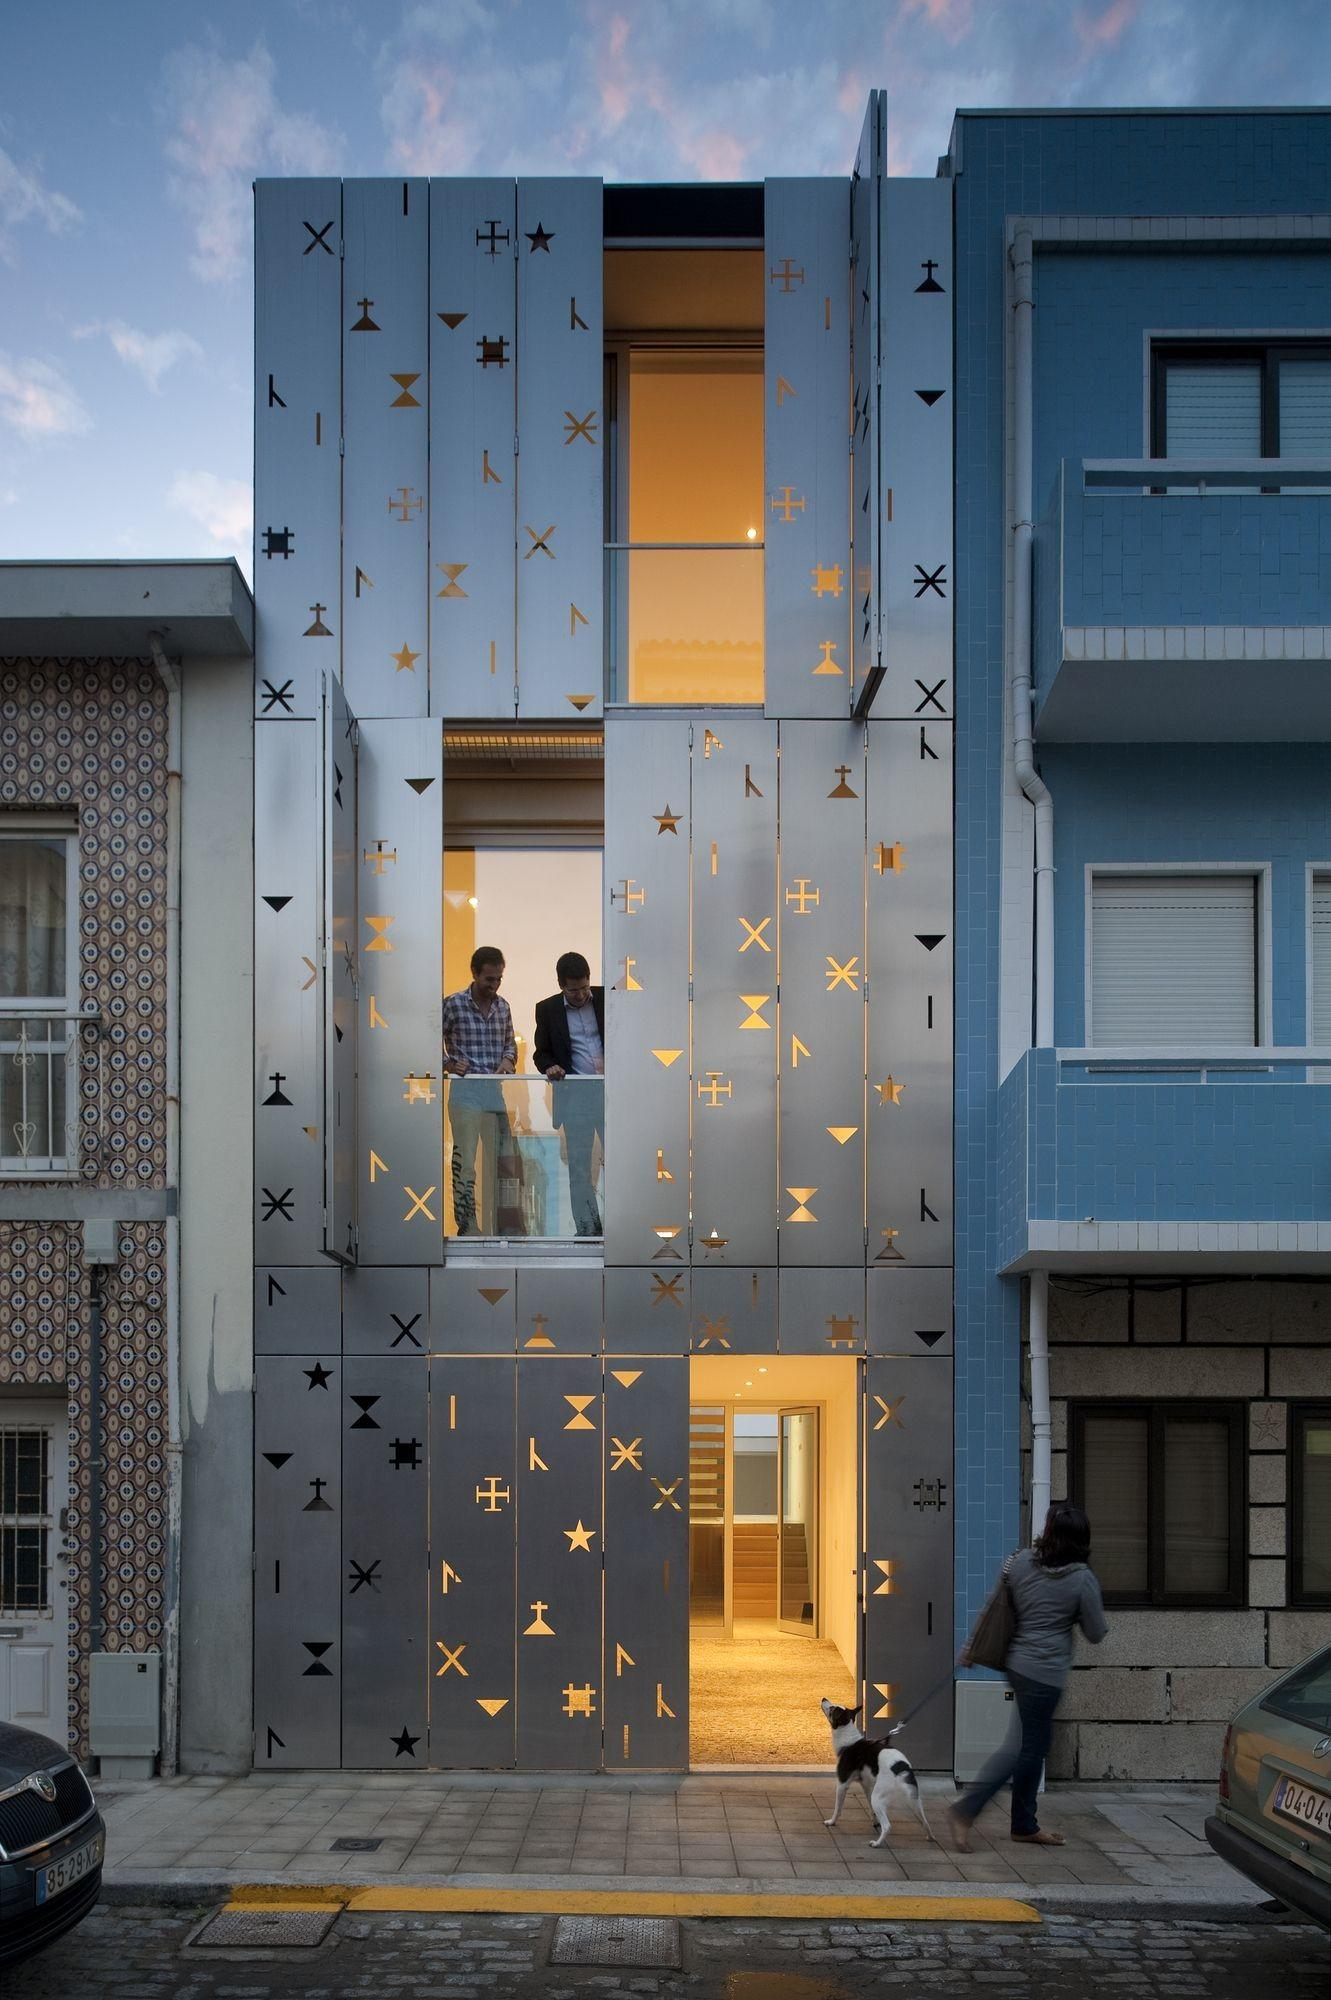 Cool Building Facades Featuring Unconventional Design